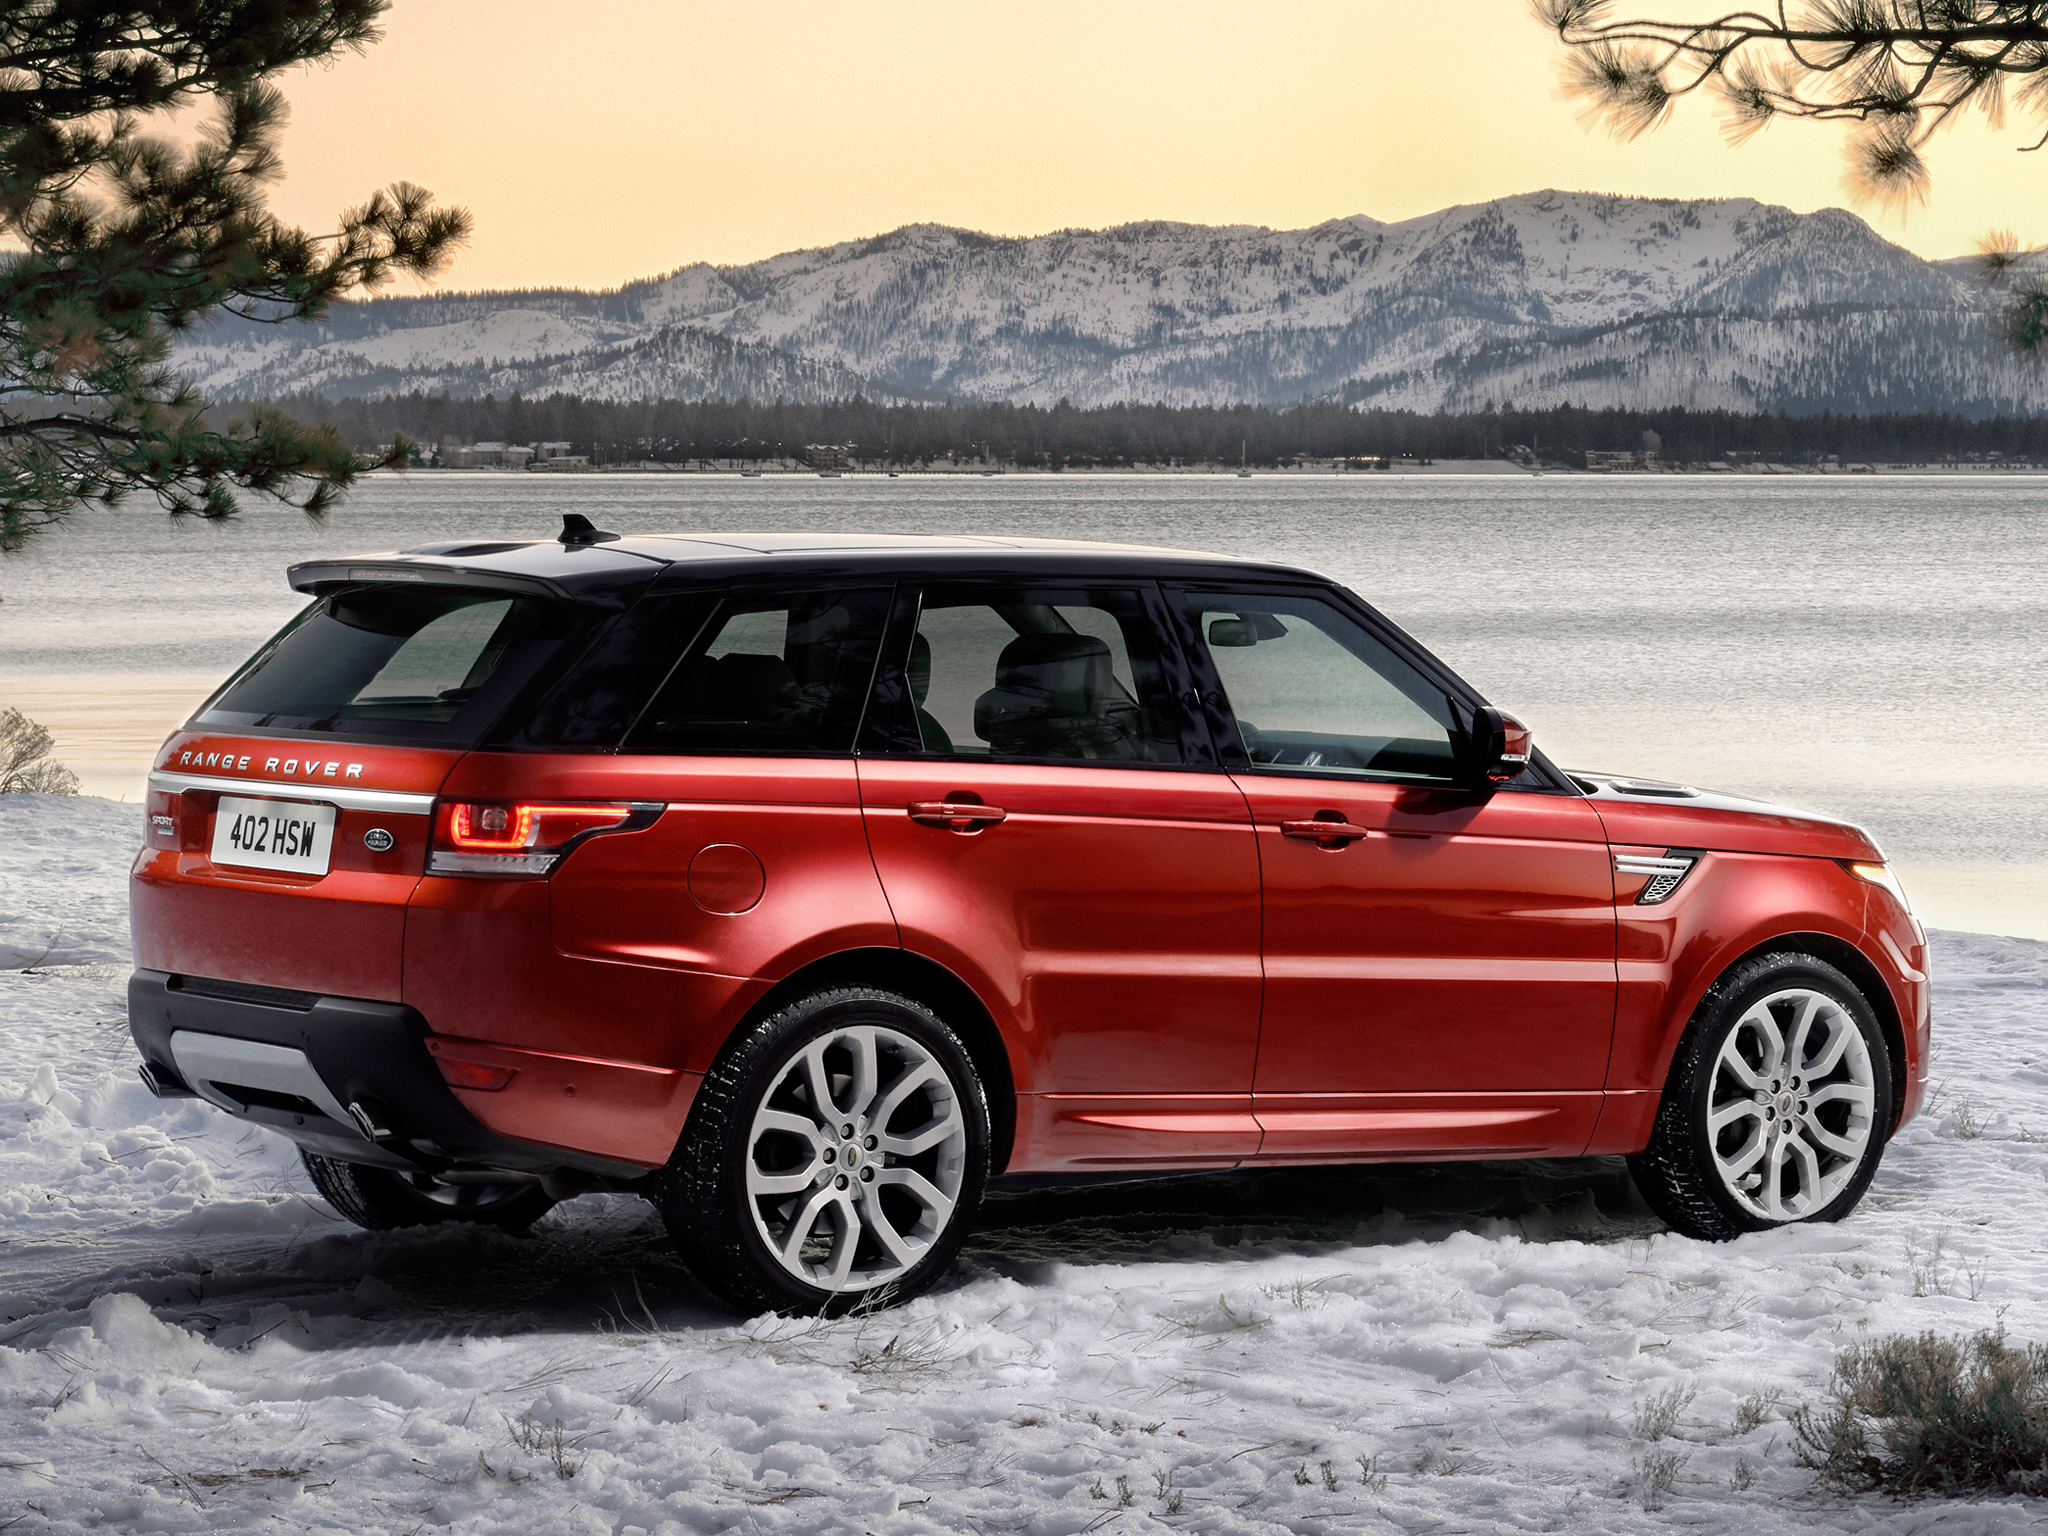 2014 Land Rover Range Rover HD Wallpaper